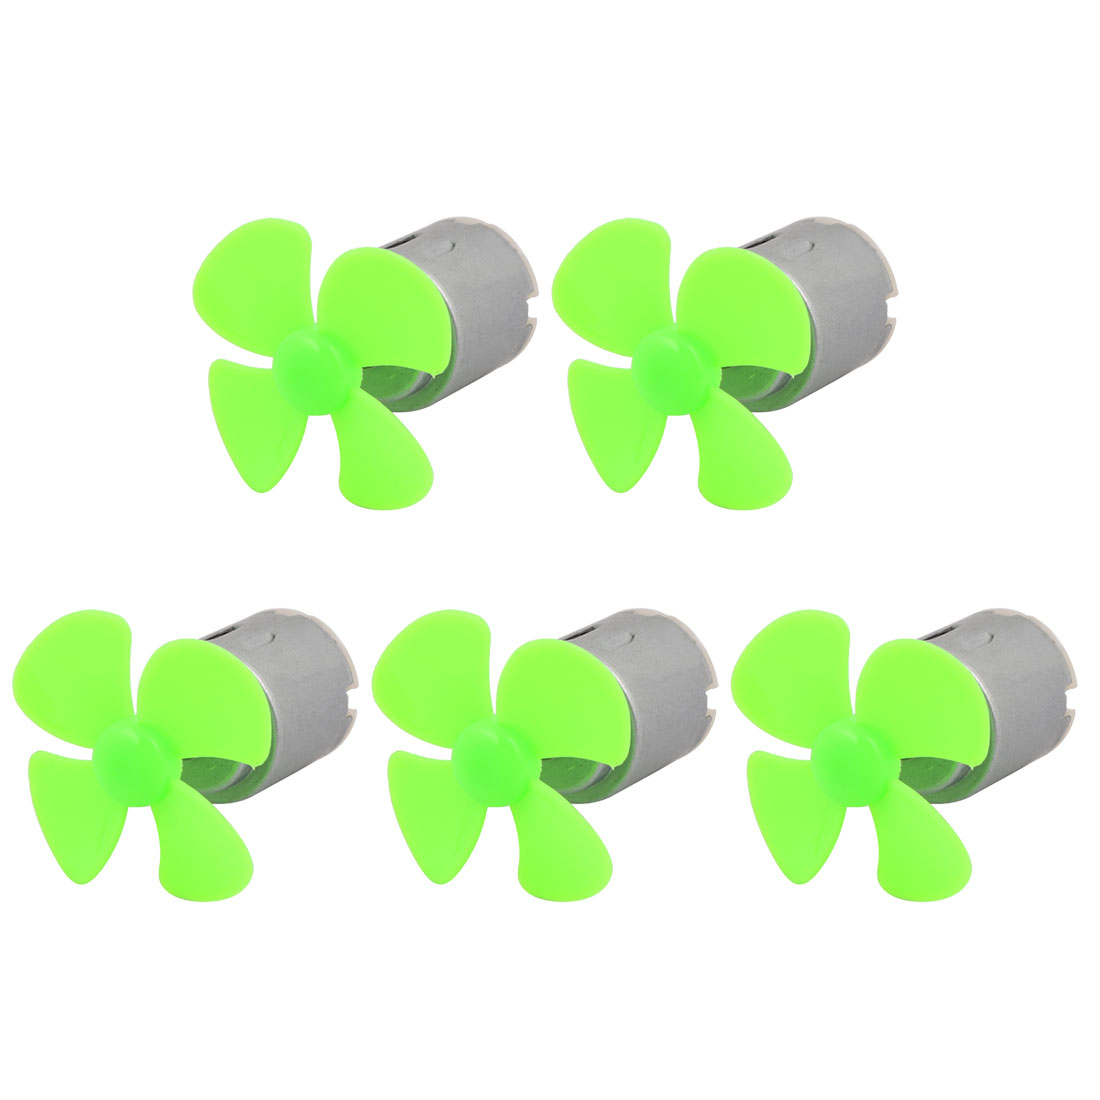 5pcs DC 3V 0.15A 19500RPM Strong Force Motor 4 Vanes 40mm Green Propeller for RC Aircraft